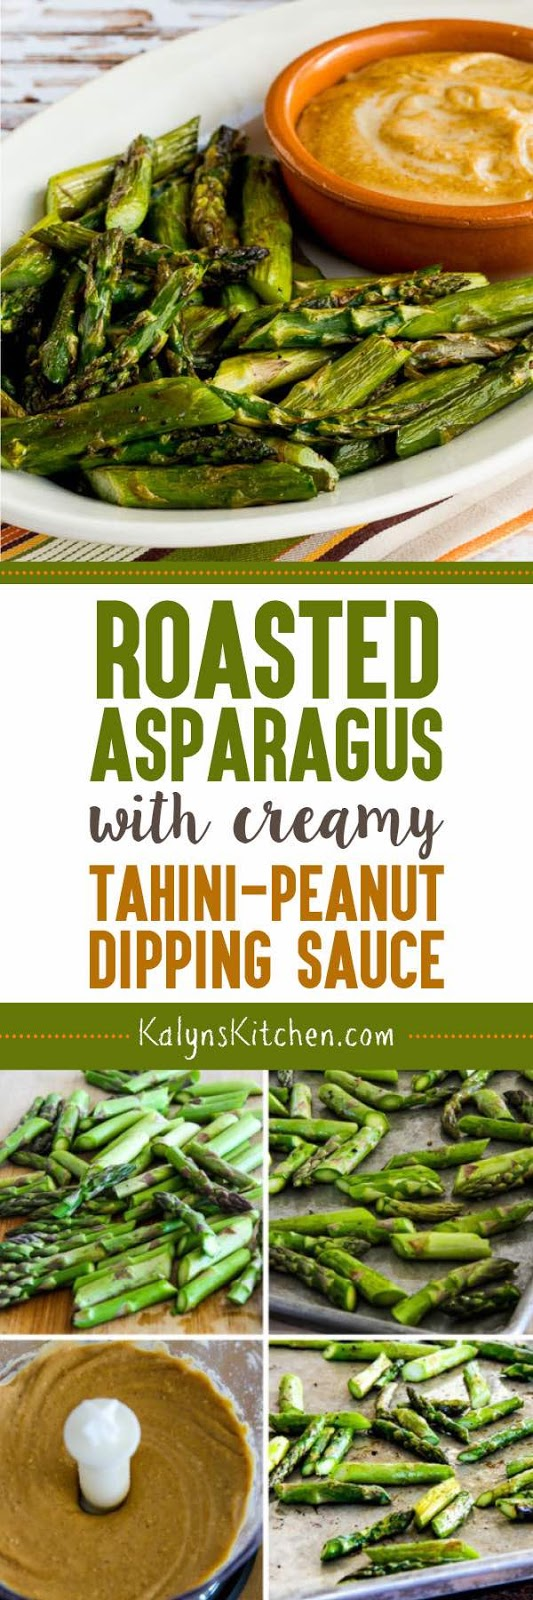 Roasted Asparagus with Creamy Tahini-Peanut Dipping Sauce ...